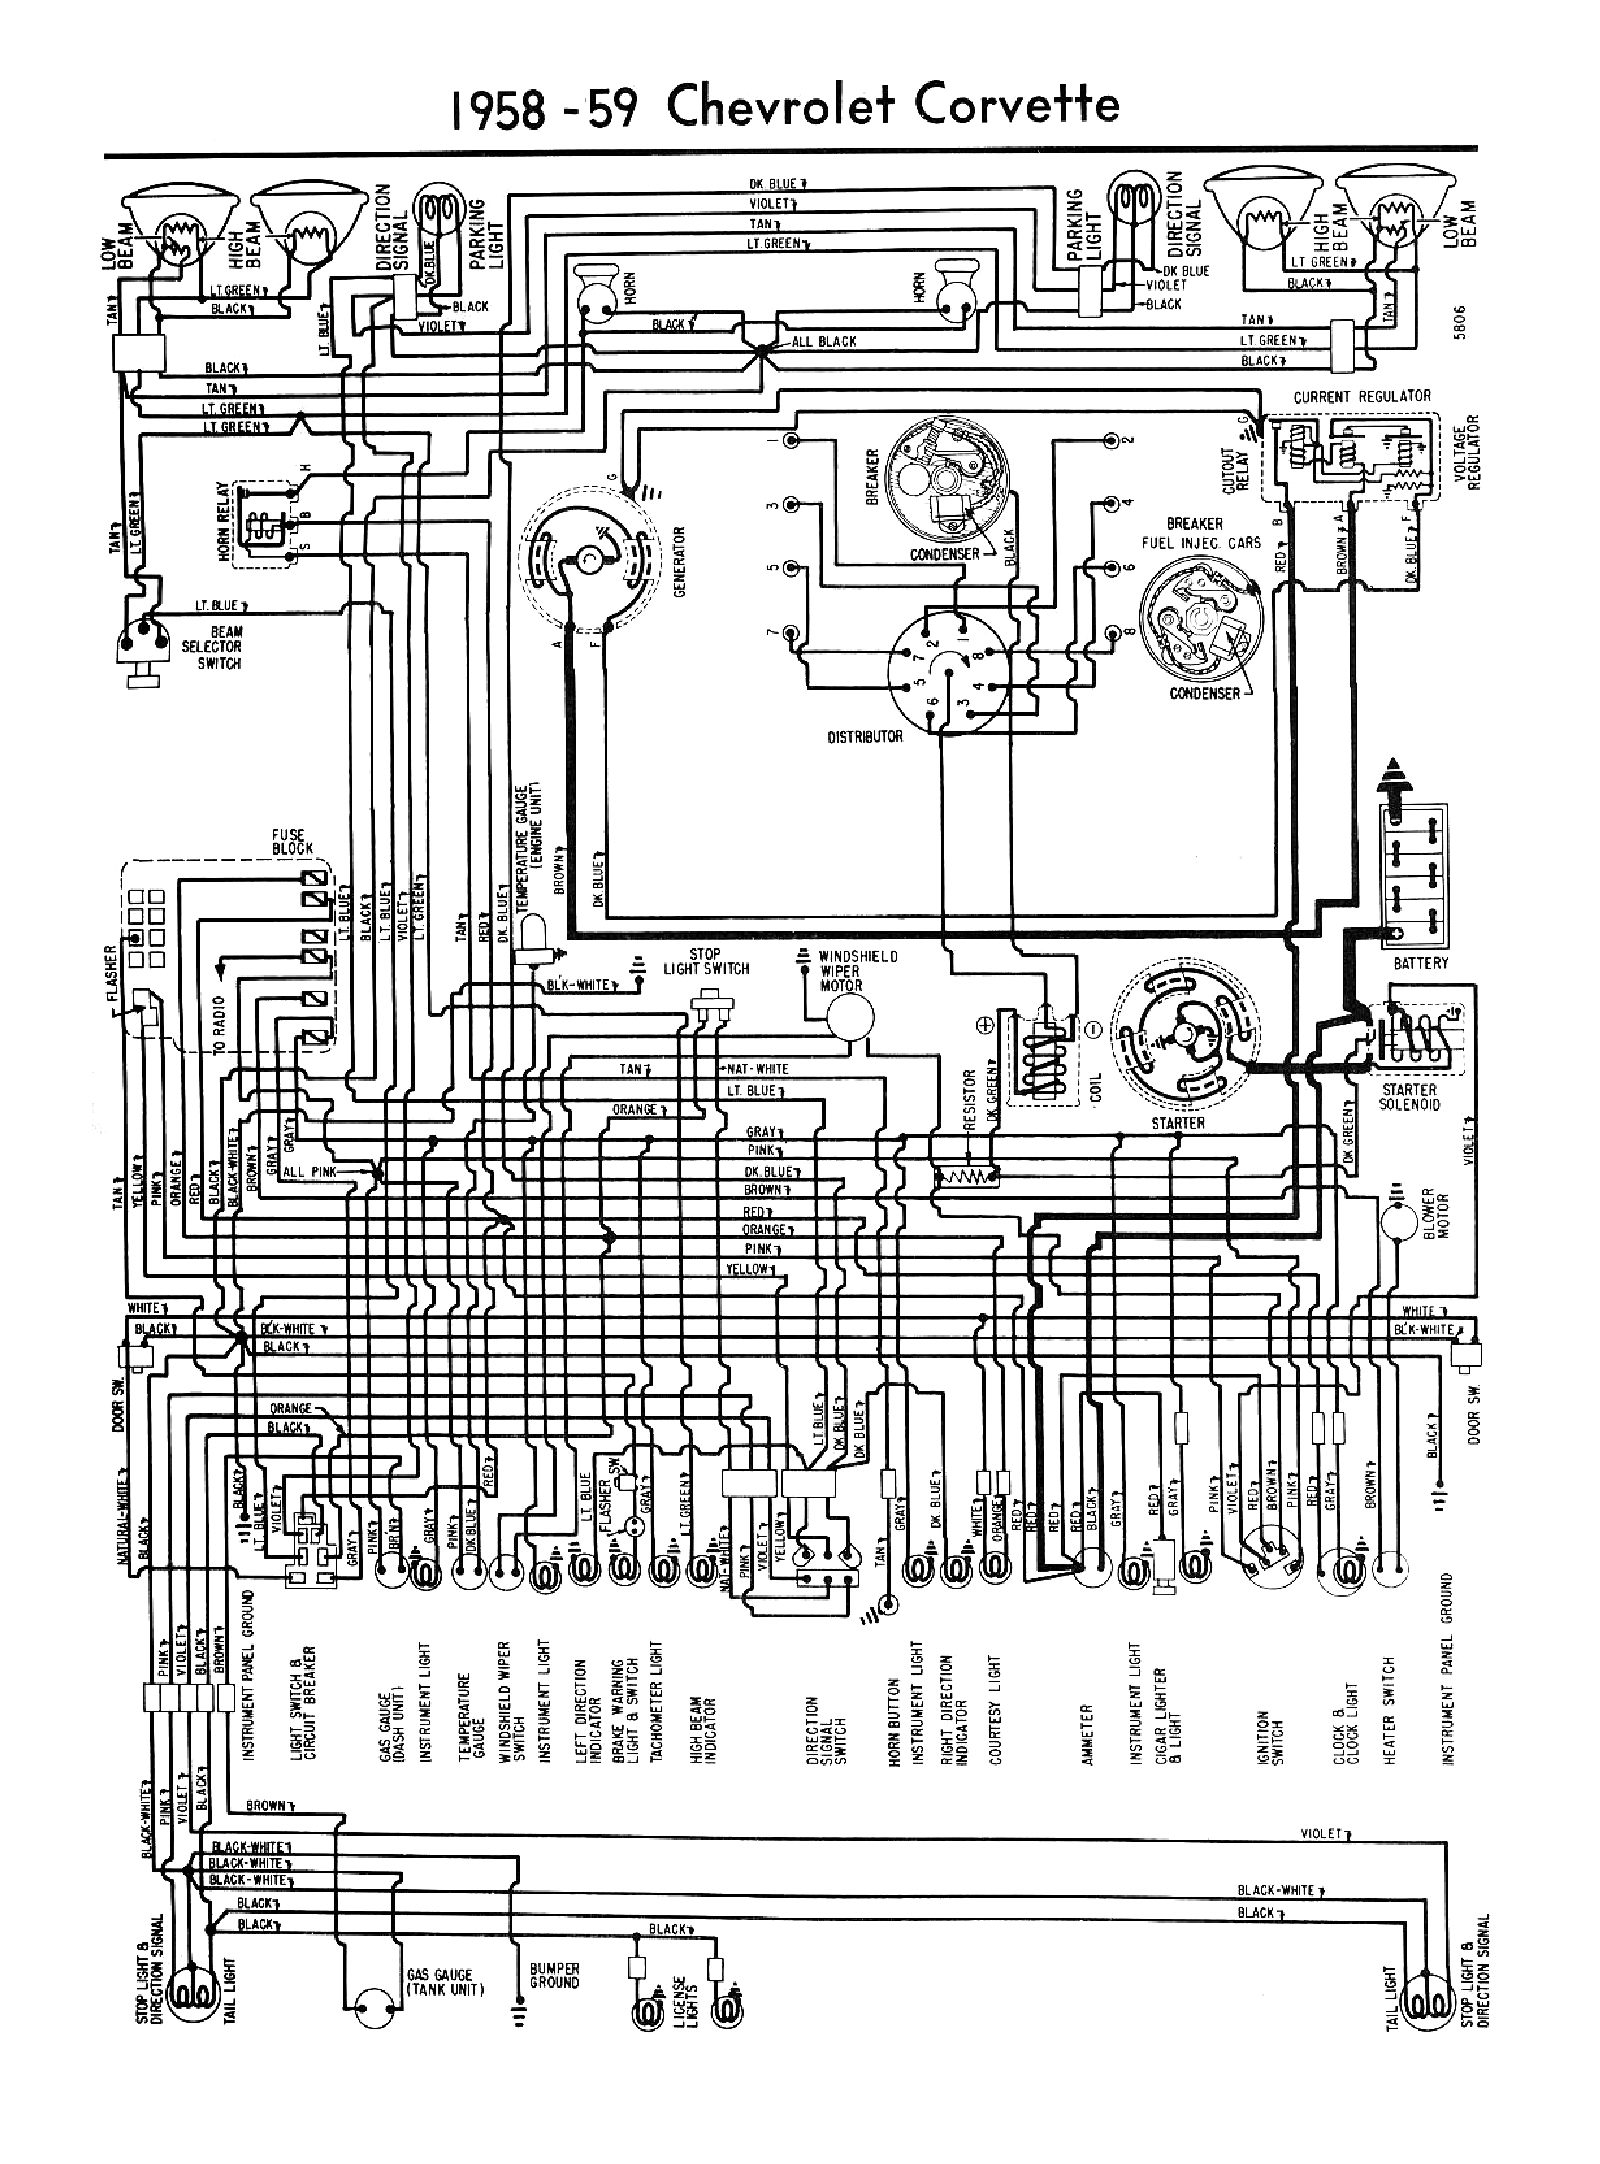 1958 Dodge Wiring Diagram 95 Truck Library1958 Corvette Chevy Diagrams